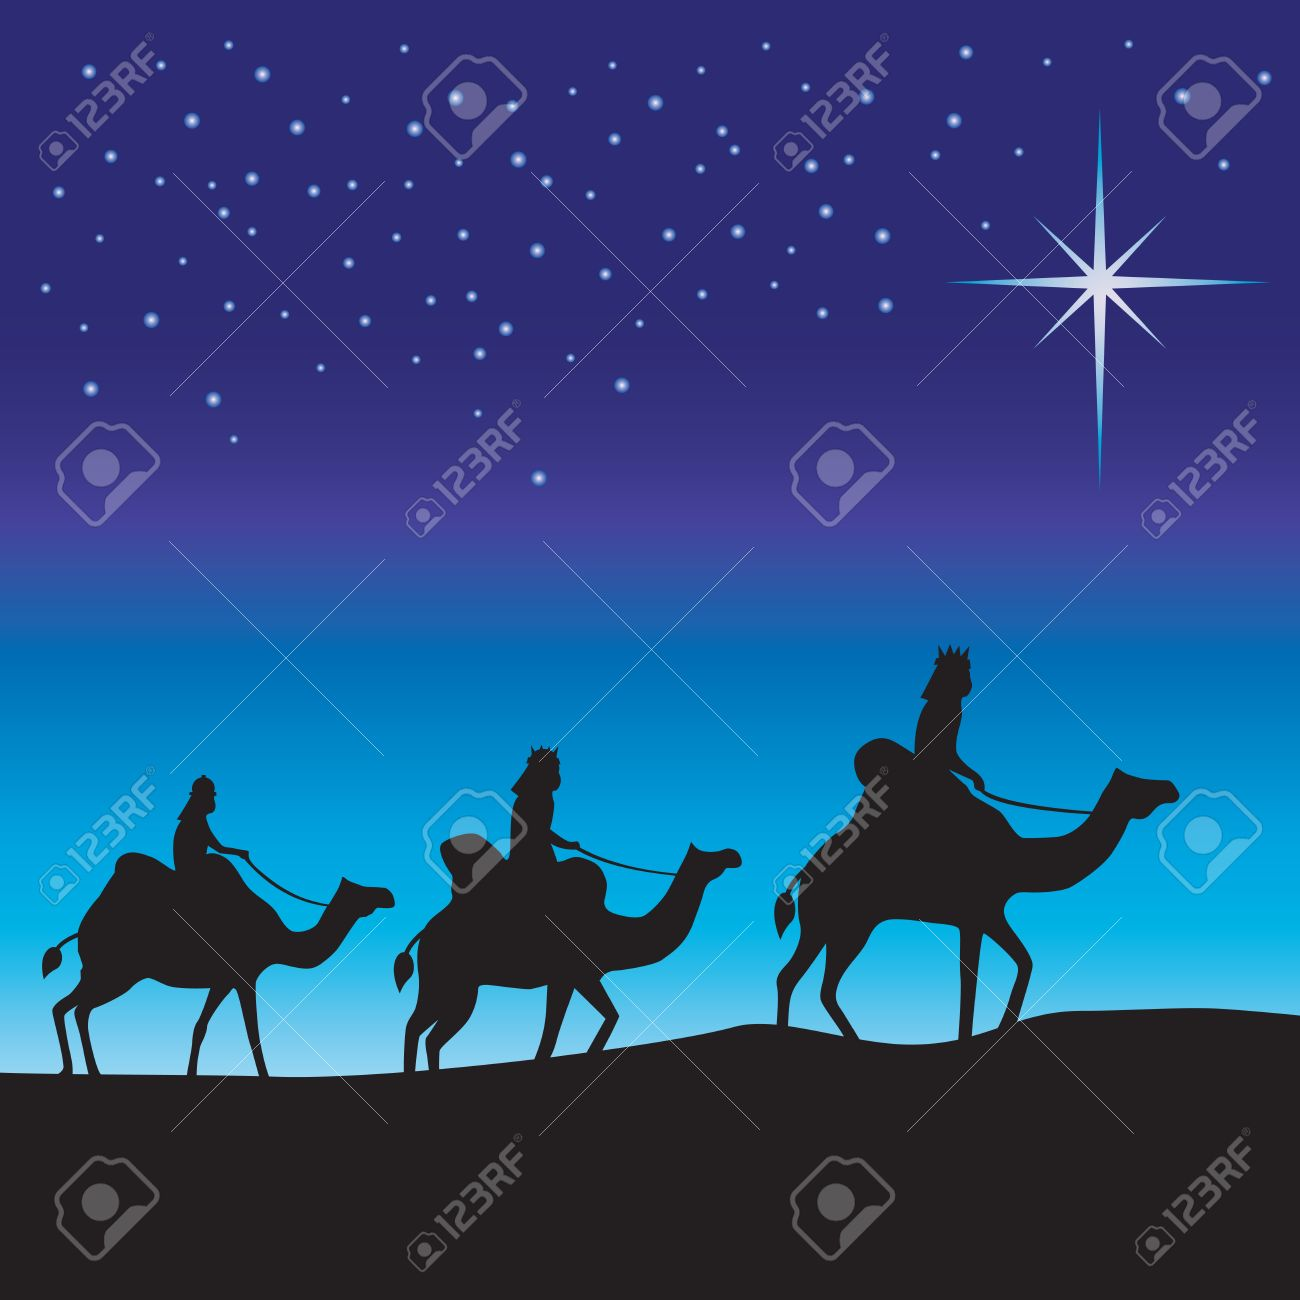 1 586 three wise men stock illustrations cliparts and royalty free rh 123rf com Three Wise Men with Jesus Three Wise Men with Jesus